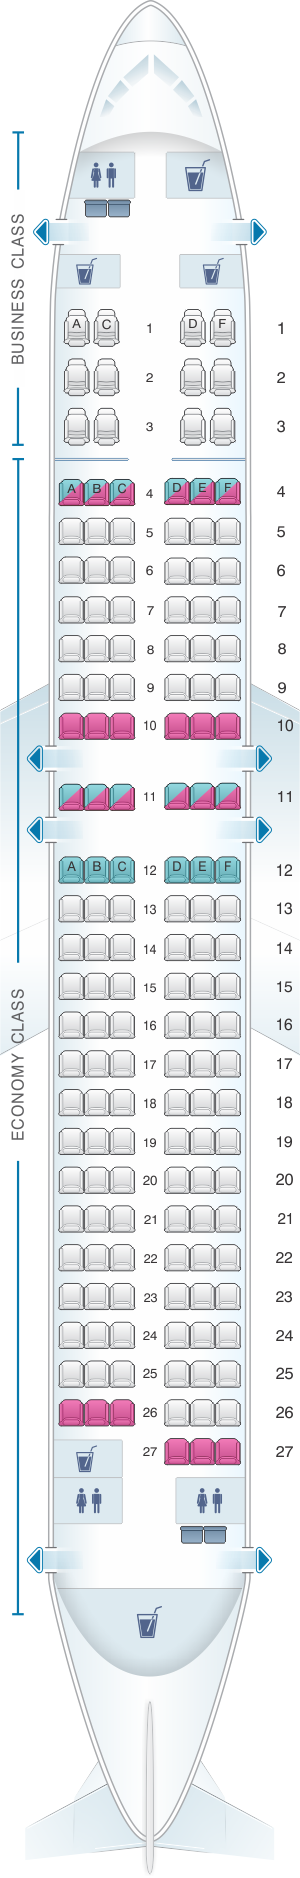 Seat map for Turkish Airlines Airbus A320 200